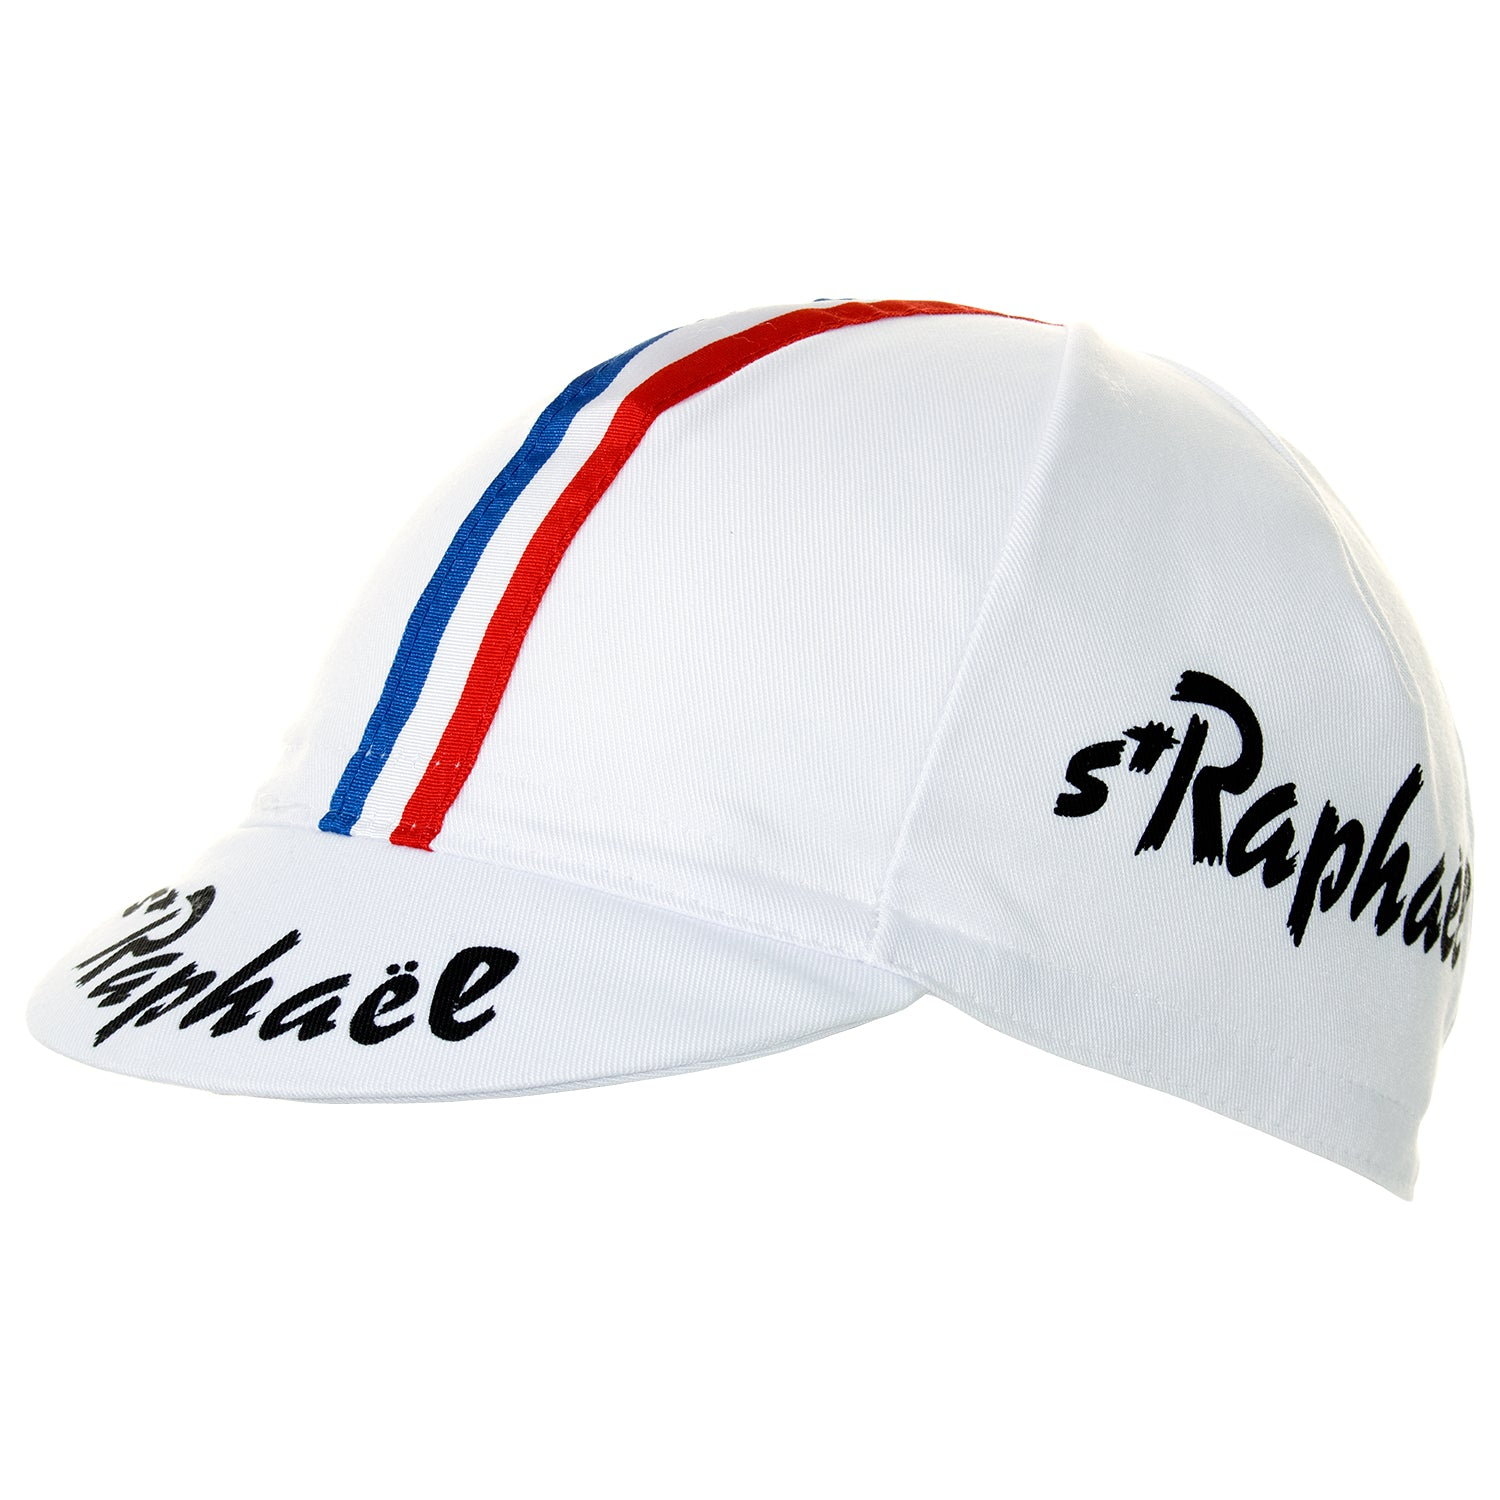 St Raphael Retro Cotton Cycling Cap